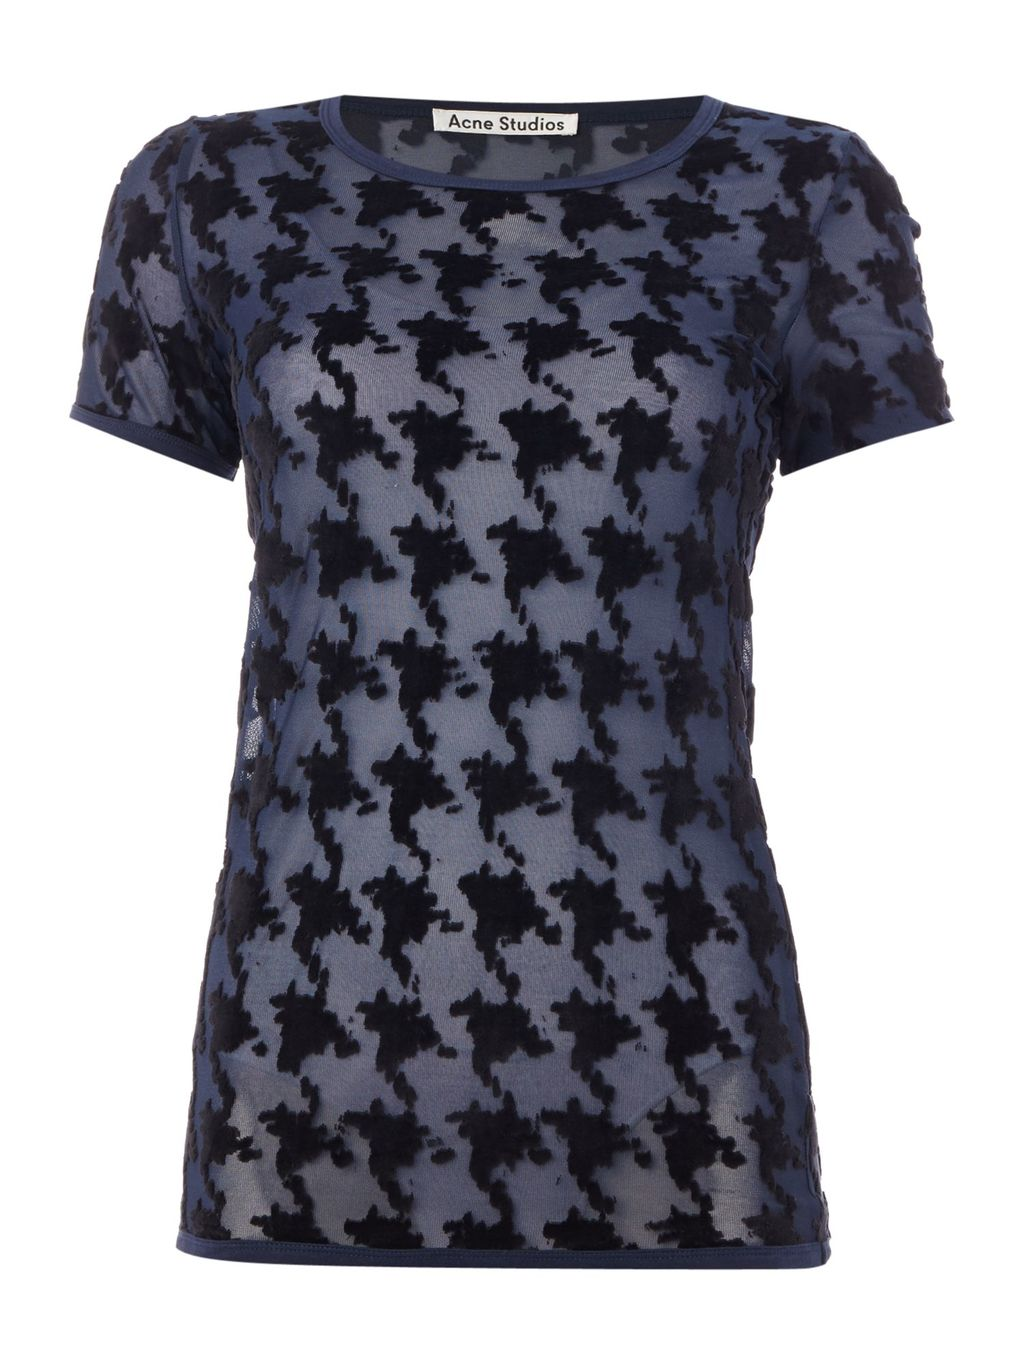 Short Sleeved Jacquard Top, Black - predominant colour: navy; secondary colour: black; occasions: casual; length: standard; style: top; fibres: cotton - mix; fit: body skimming; neckline: crew; sleeve length: short sleeve; sleeve style: standard; pattern type: fabric; pattern: patterned/print; texture group: brocade/jacquard; multicoloured: multicoloured; season: s/s 2016; wardrobe: highlight